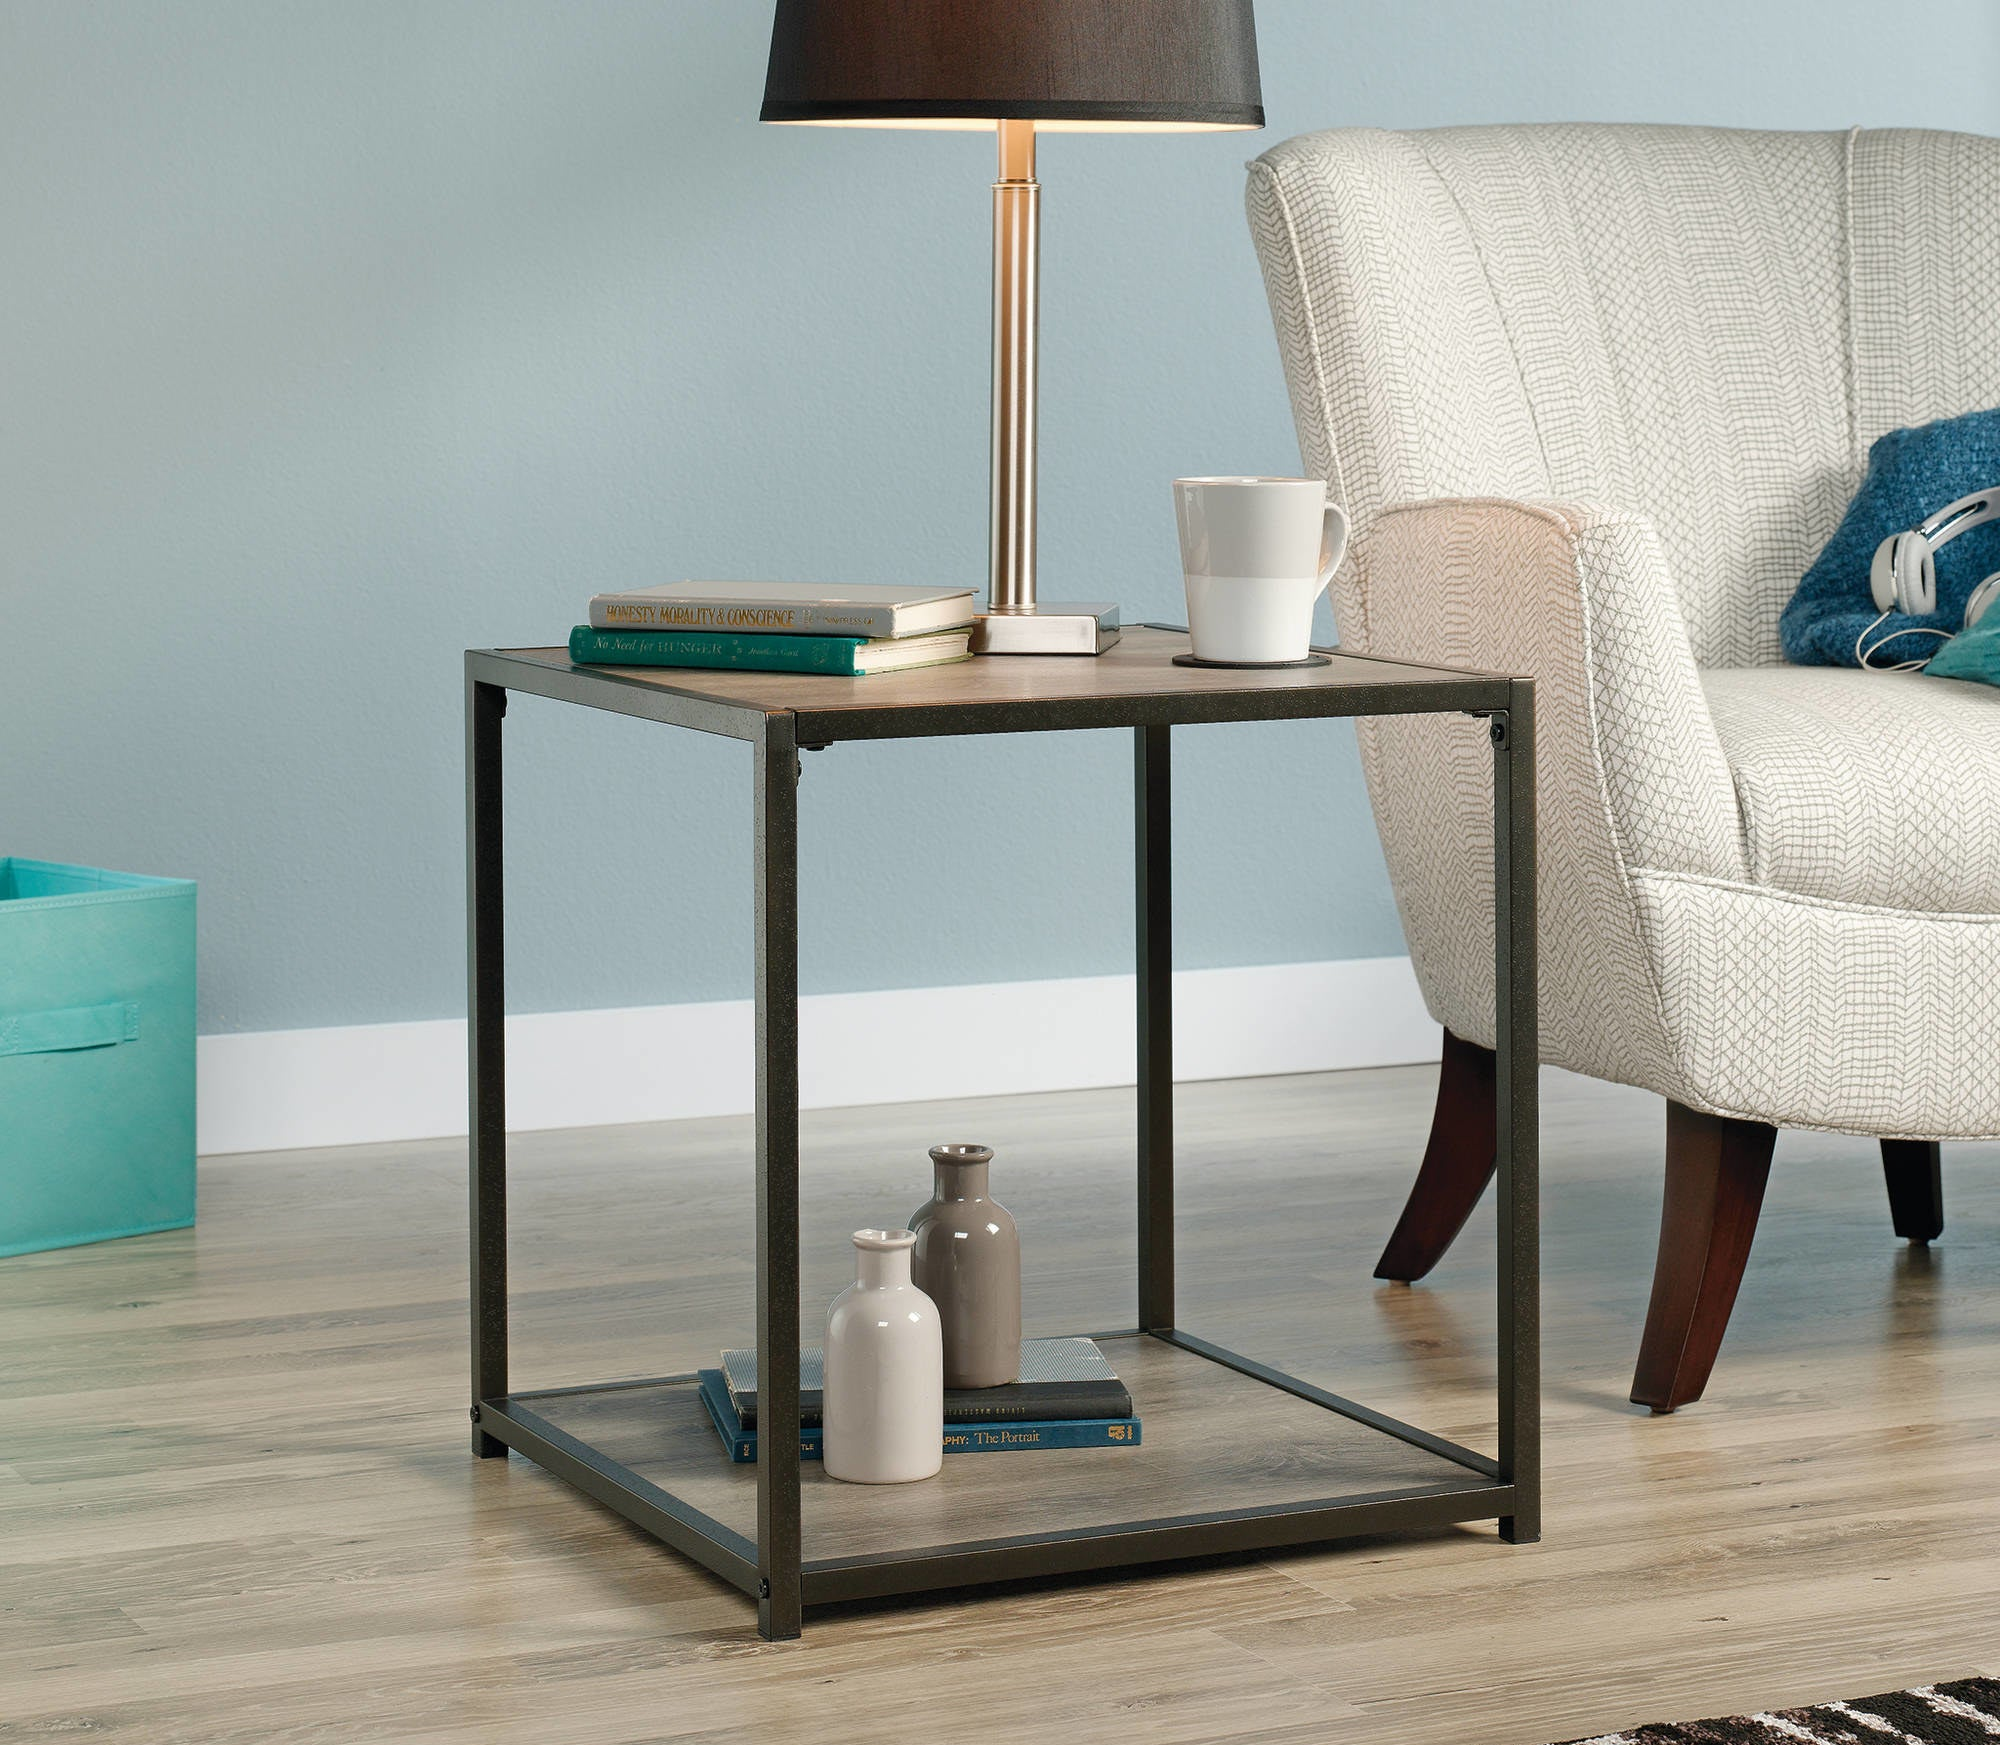 the side table in dark brown